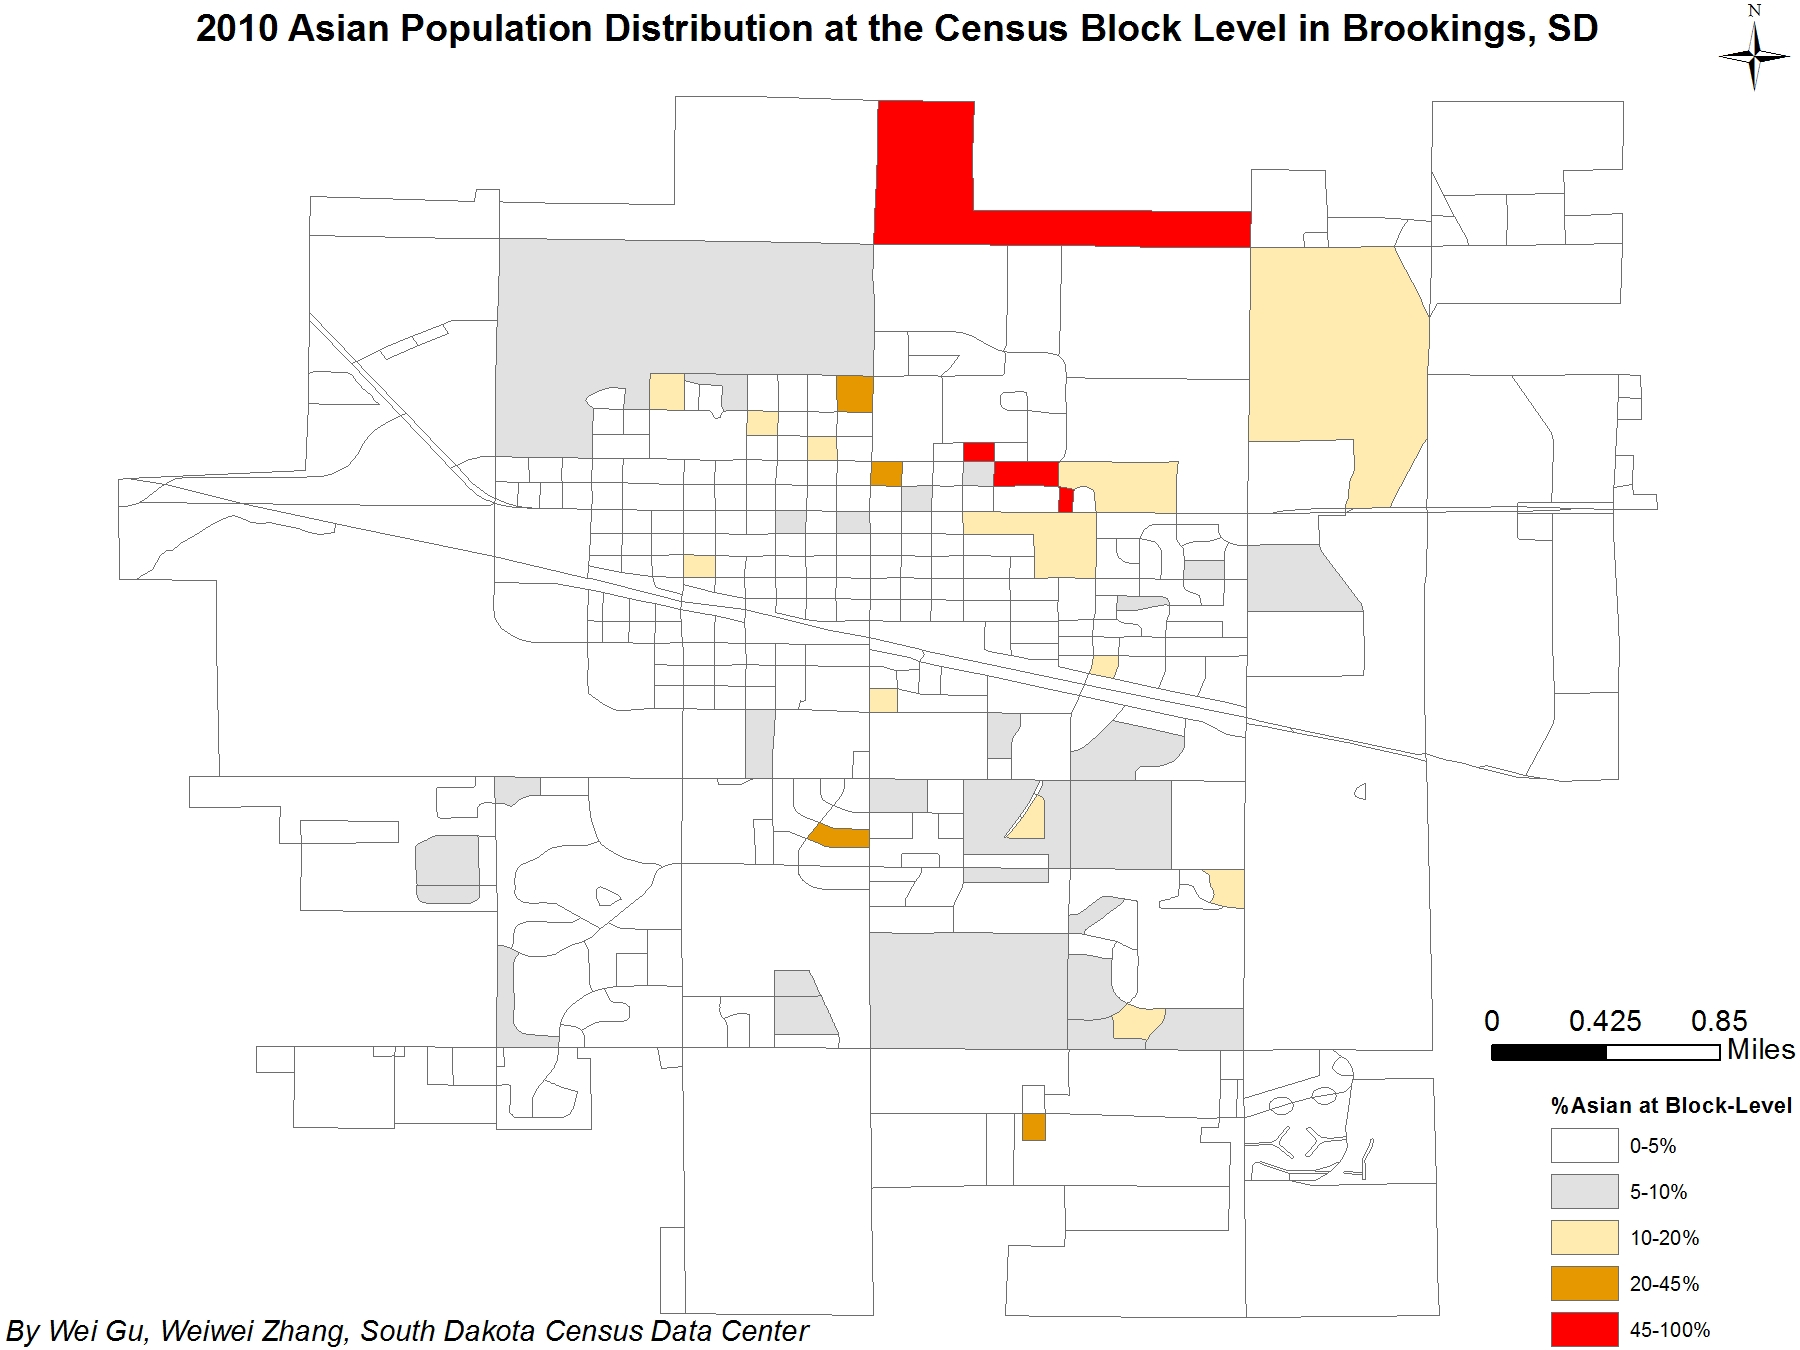 Collection of maps south dakota state university asian population distribution in block level in brookings sd 2010 1betcityfo Gallery